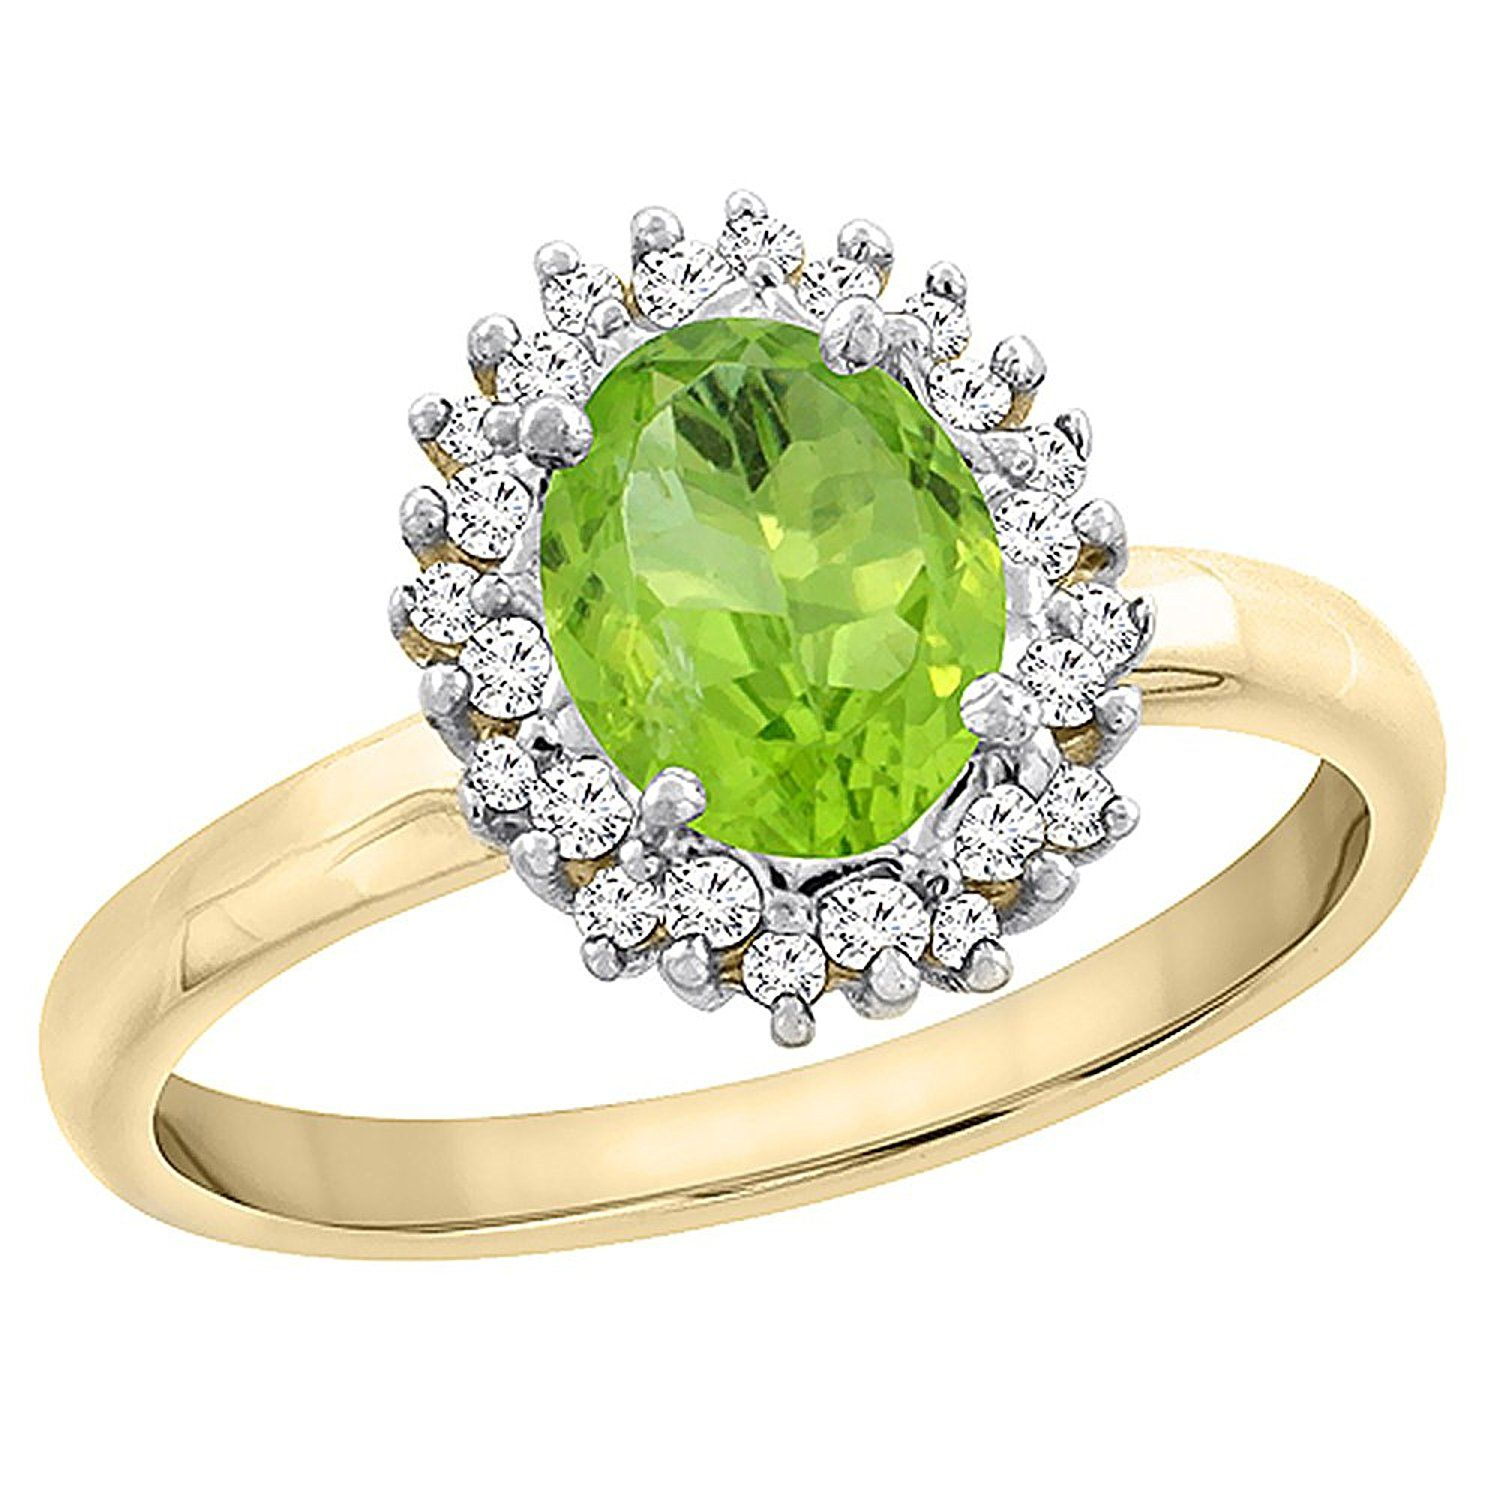 pt rings yellow pear diamond peridot bpid ring engagement your and own gold design